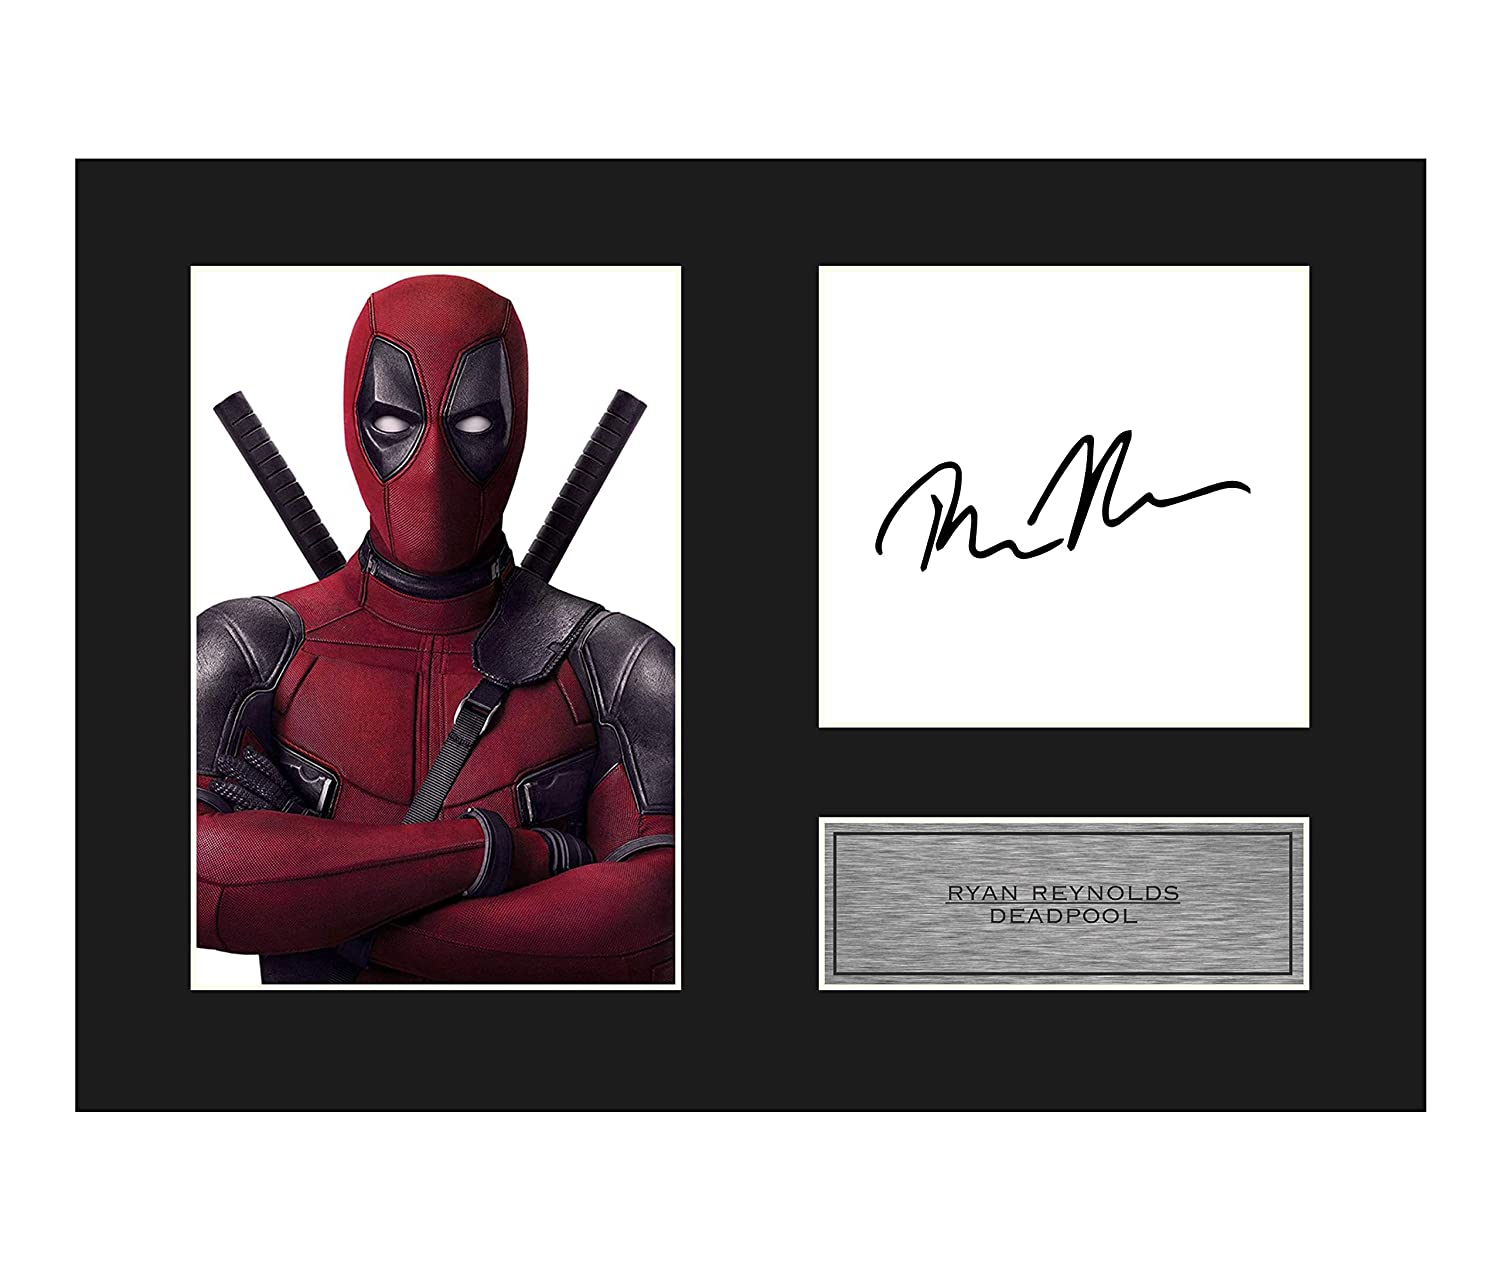 Ryan Reynolds Signed Mounted Photo Display Deadpool #01 A4 Printed Autograph Gift Picture Print